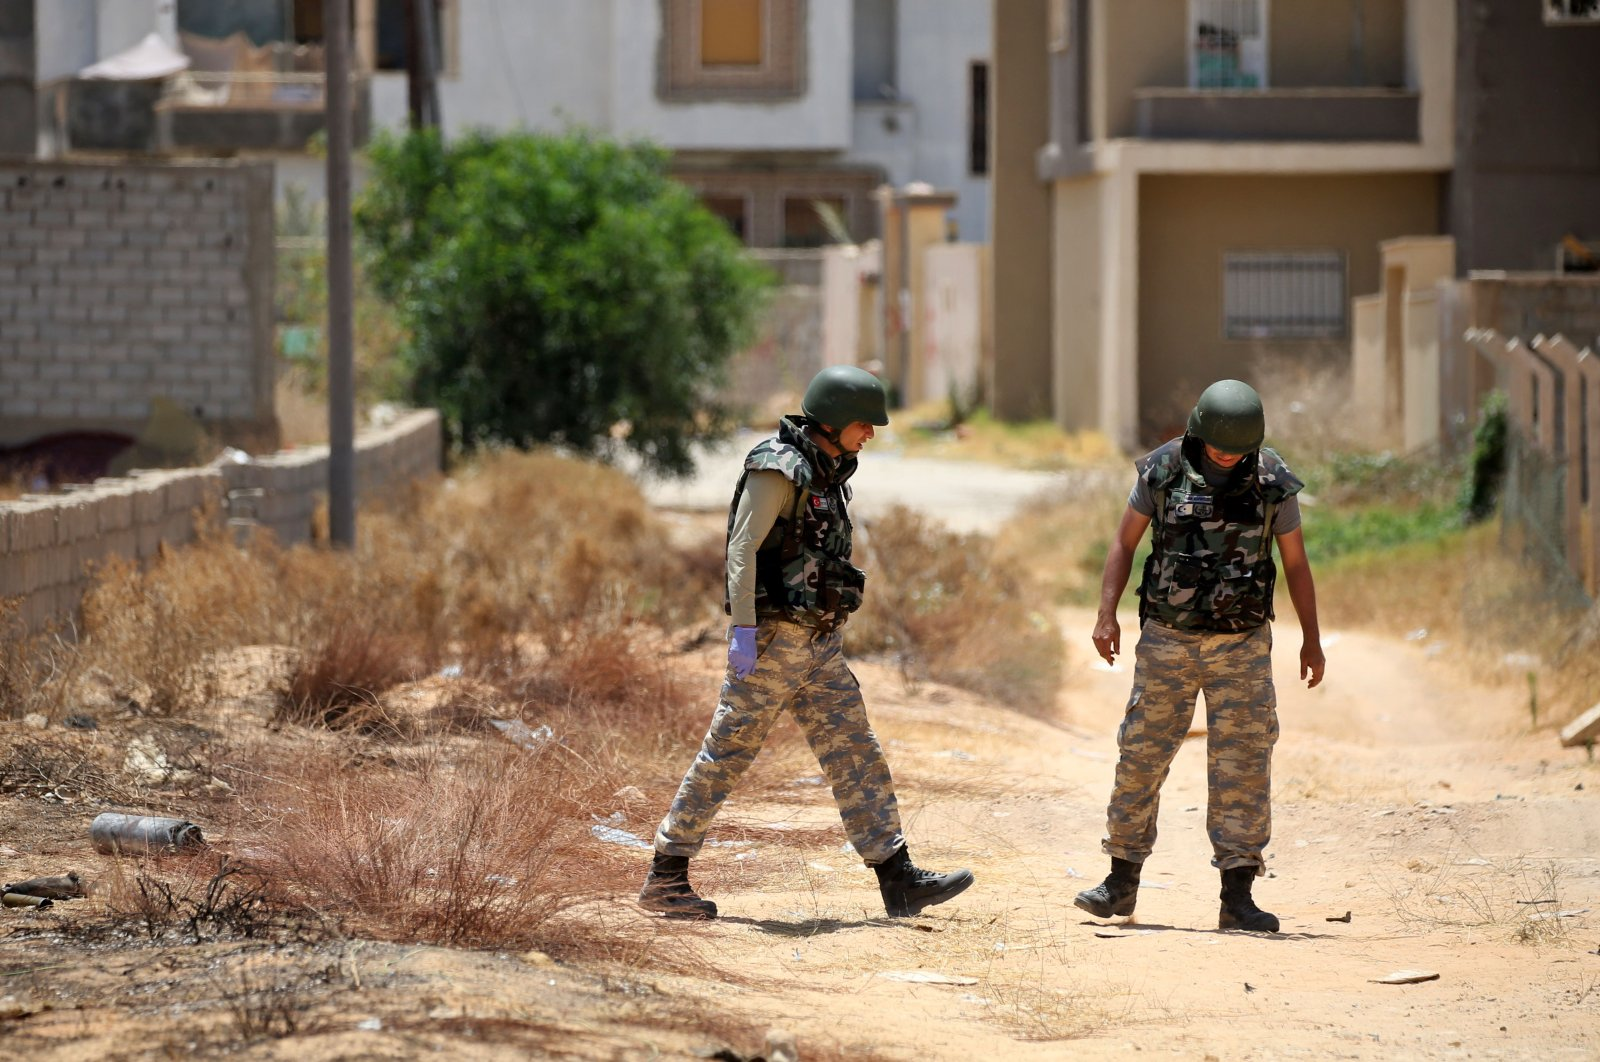 Turkish de-miners search and clear landmines in the area of Salah al-Din, south of the Libyan capital Tripoli, June 15, 2020. (AFP Photo)